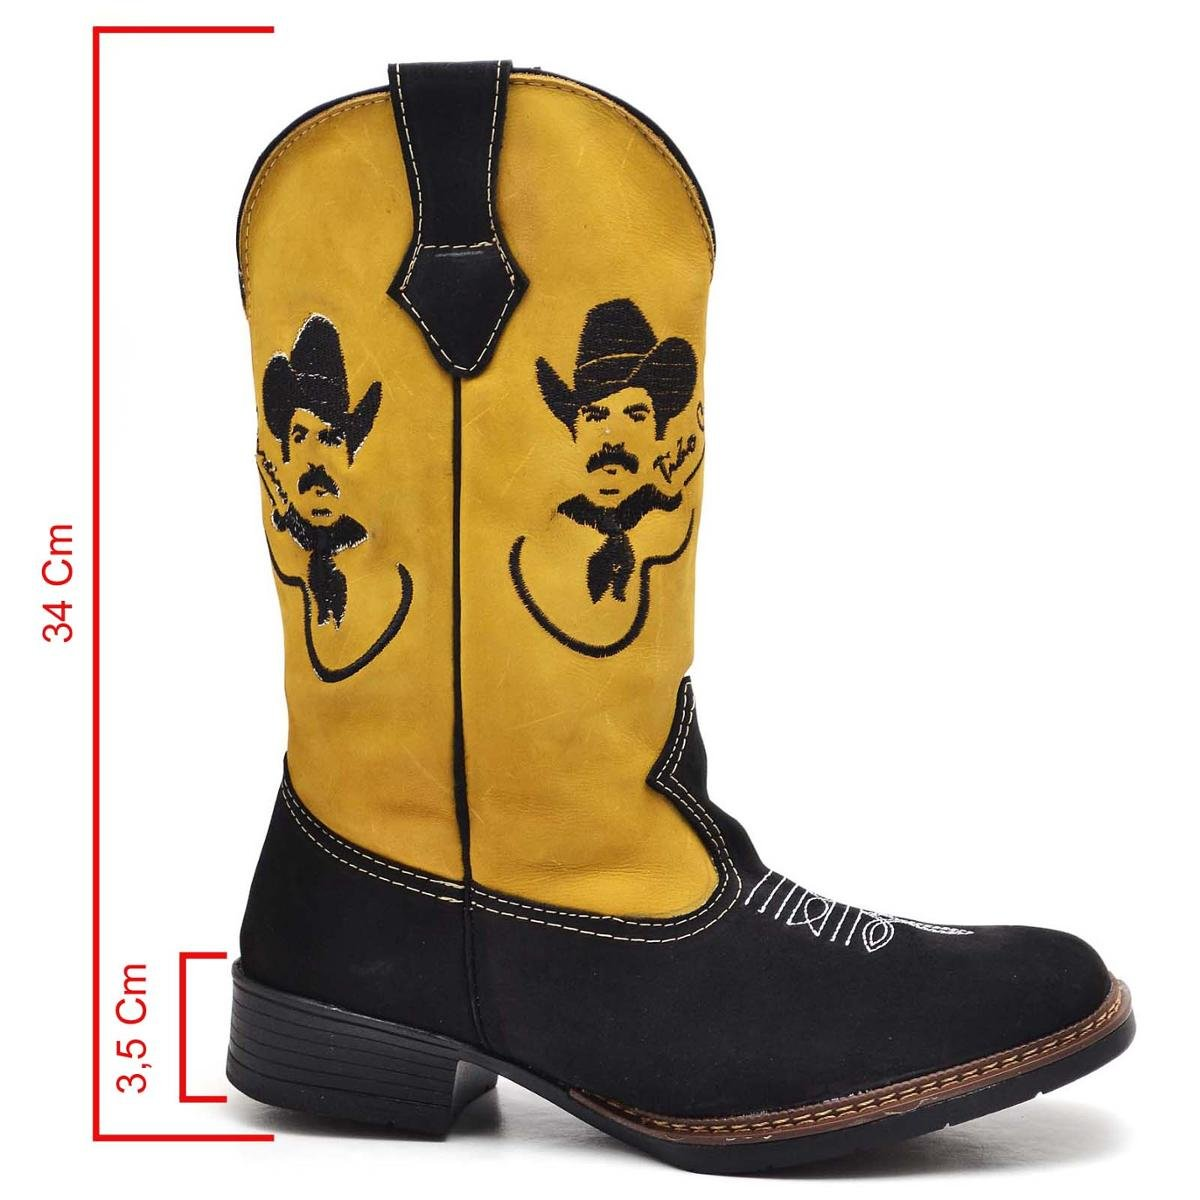 Country Bota Shoes Top Franca Masculino Franca Amarelo Shoes Bota Top 0rgwOq0